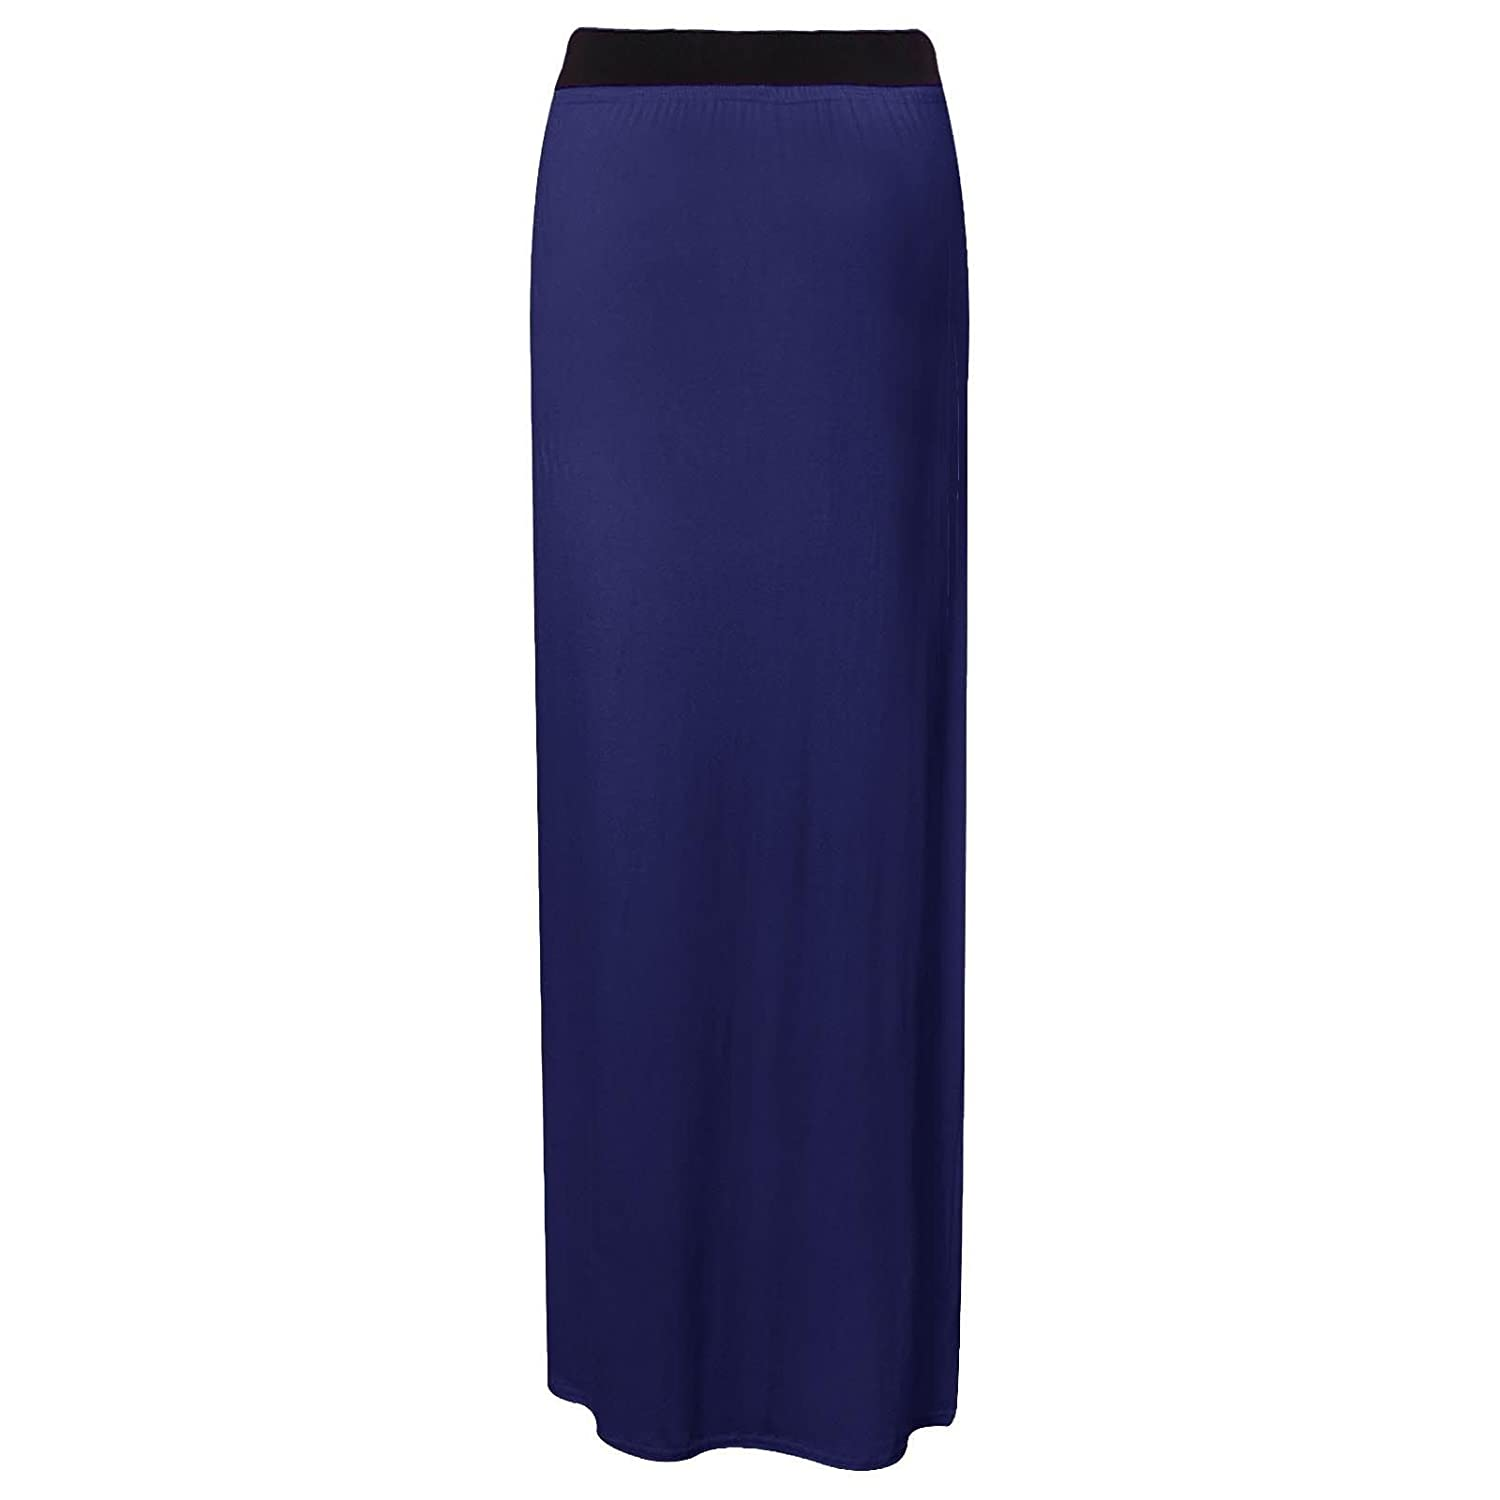 LADIES WOMEN/'S STRETCHY GYPSY SKIRT JERSEY LONG MAXI BODYCON SKIRT SIZE 8-26